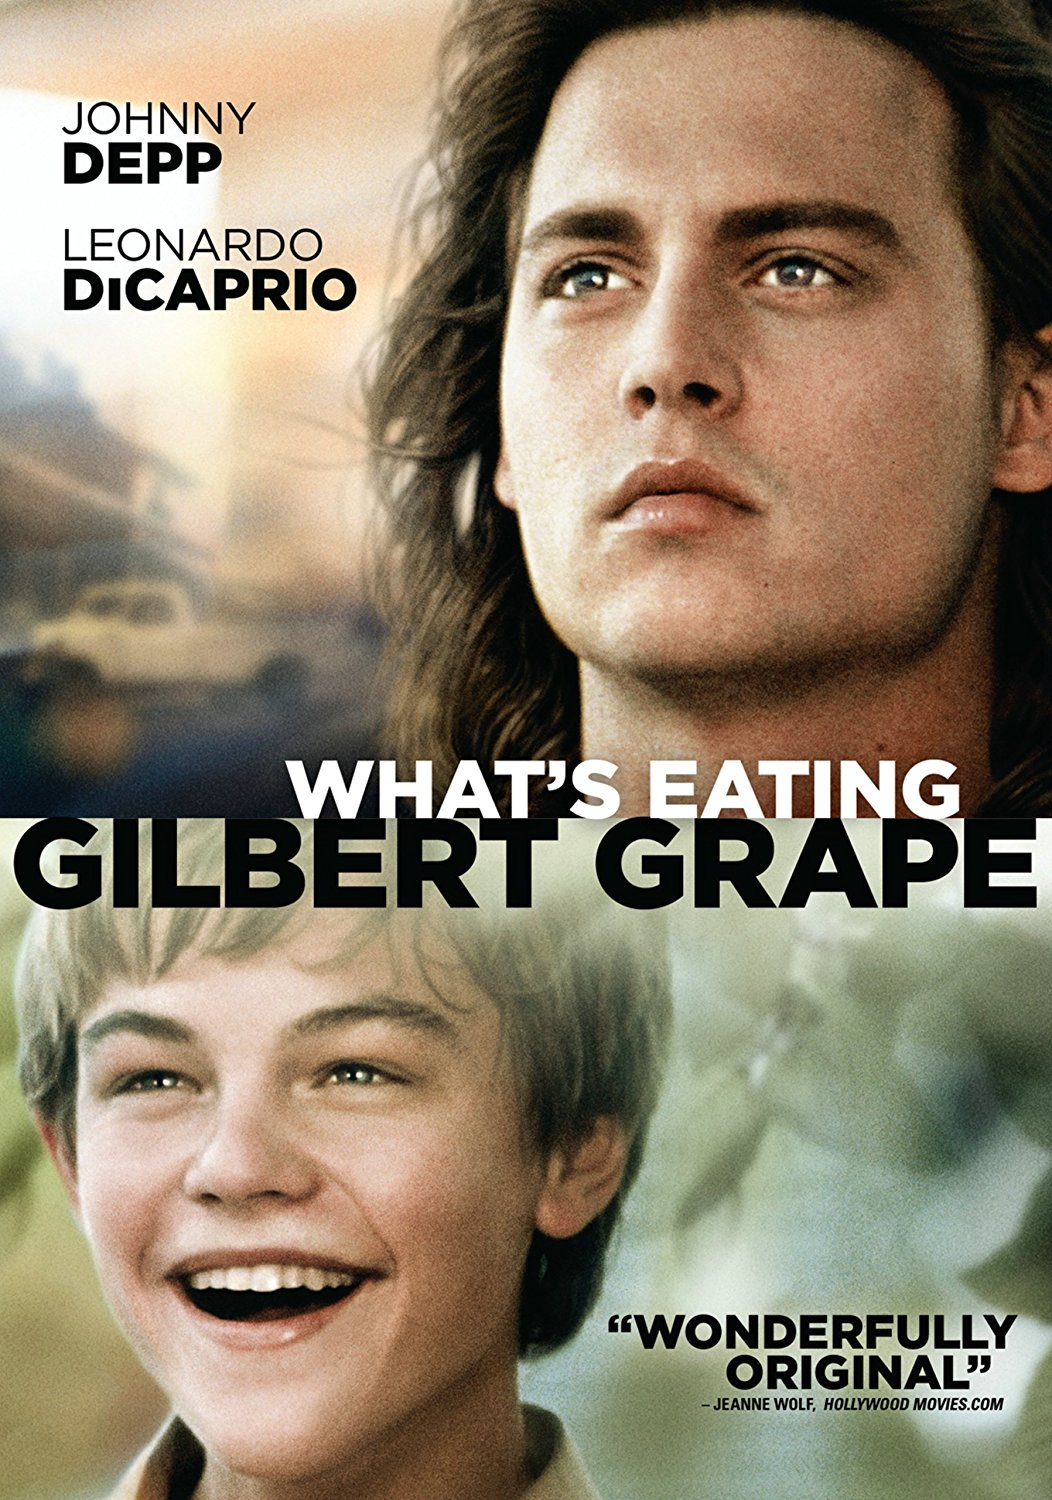 What's eating Gilbert Grape [길버트 그레이프]